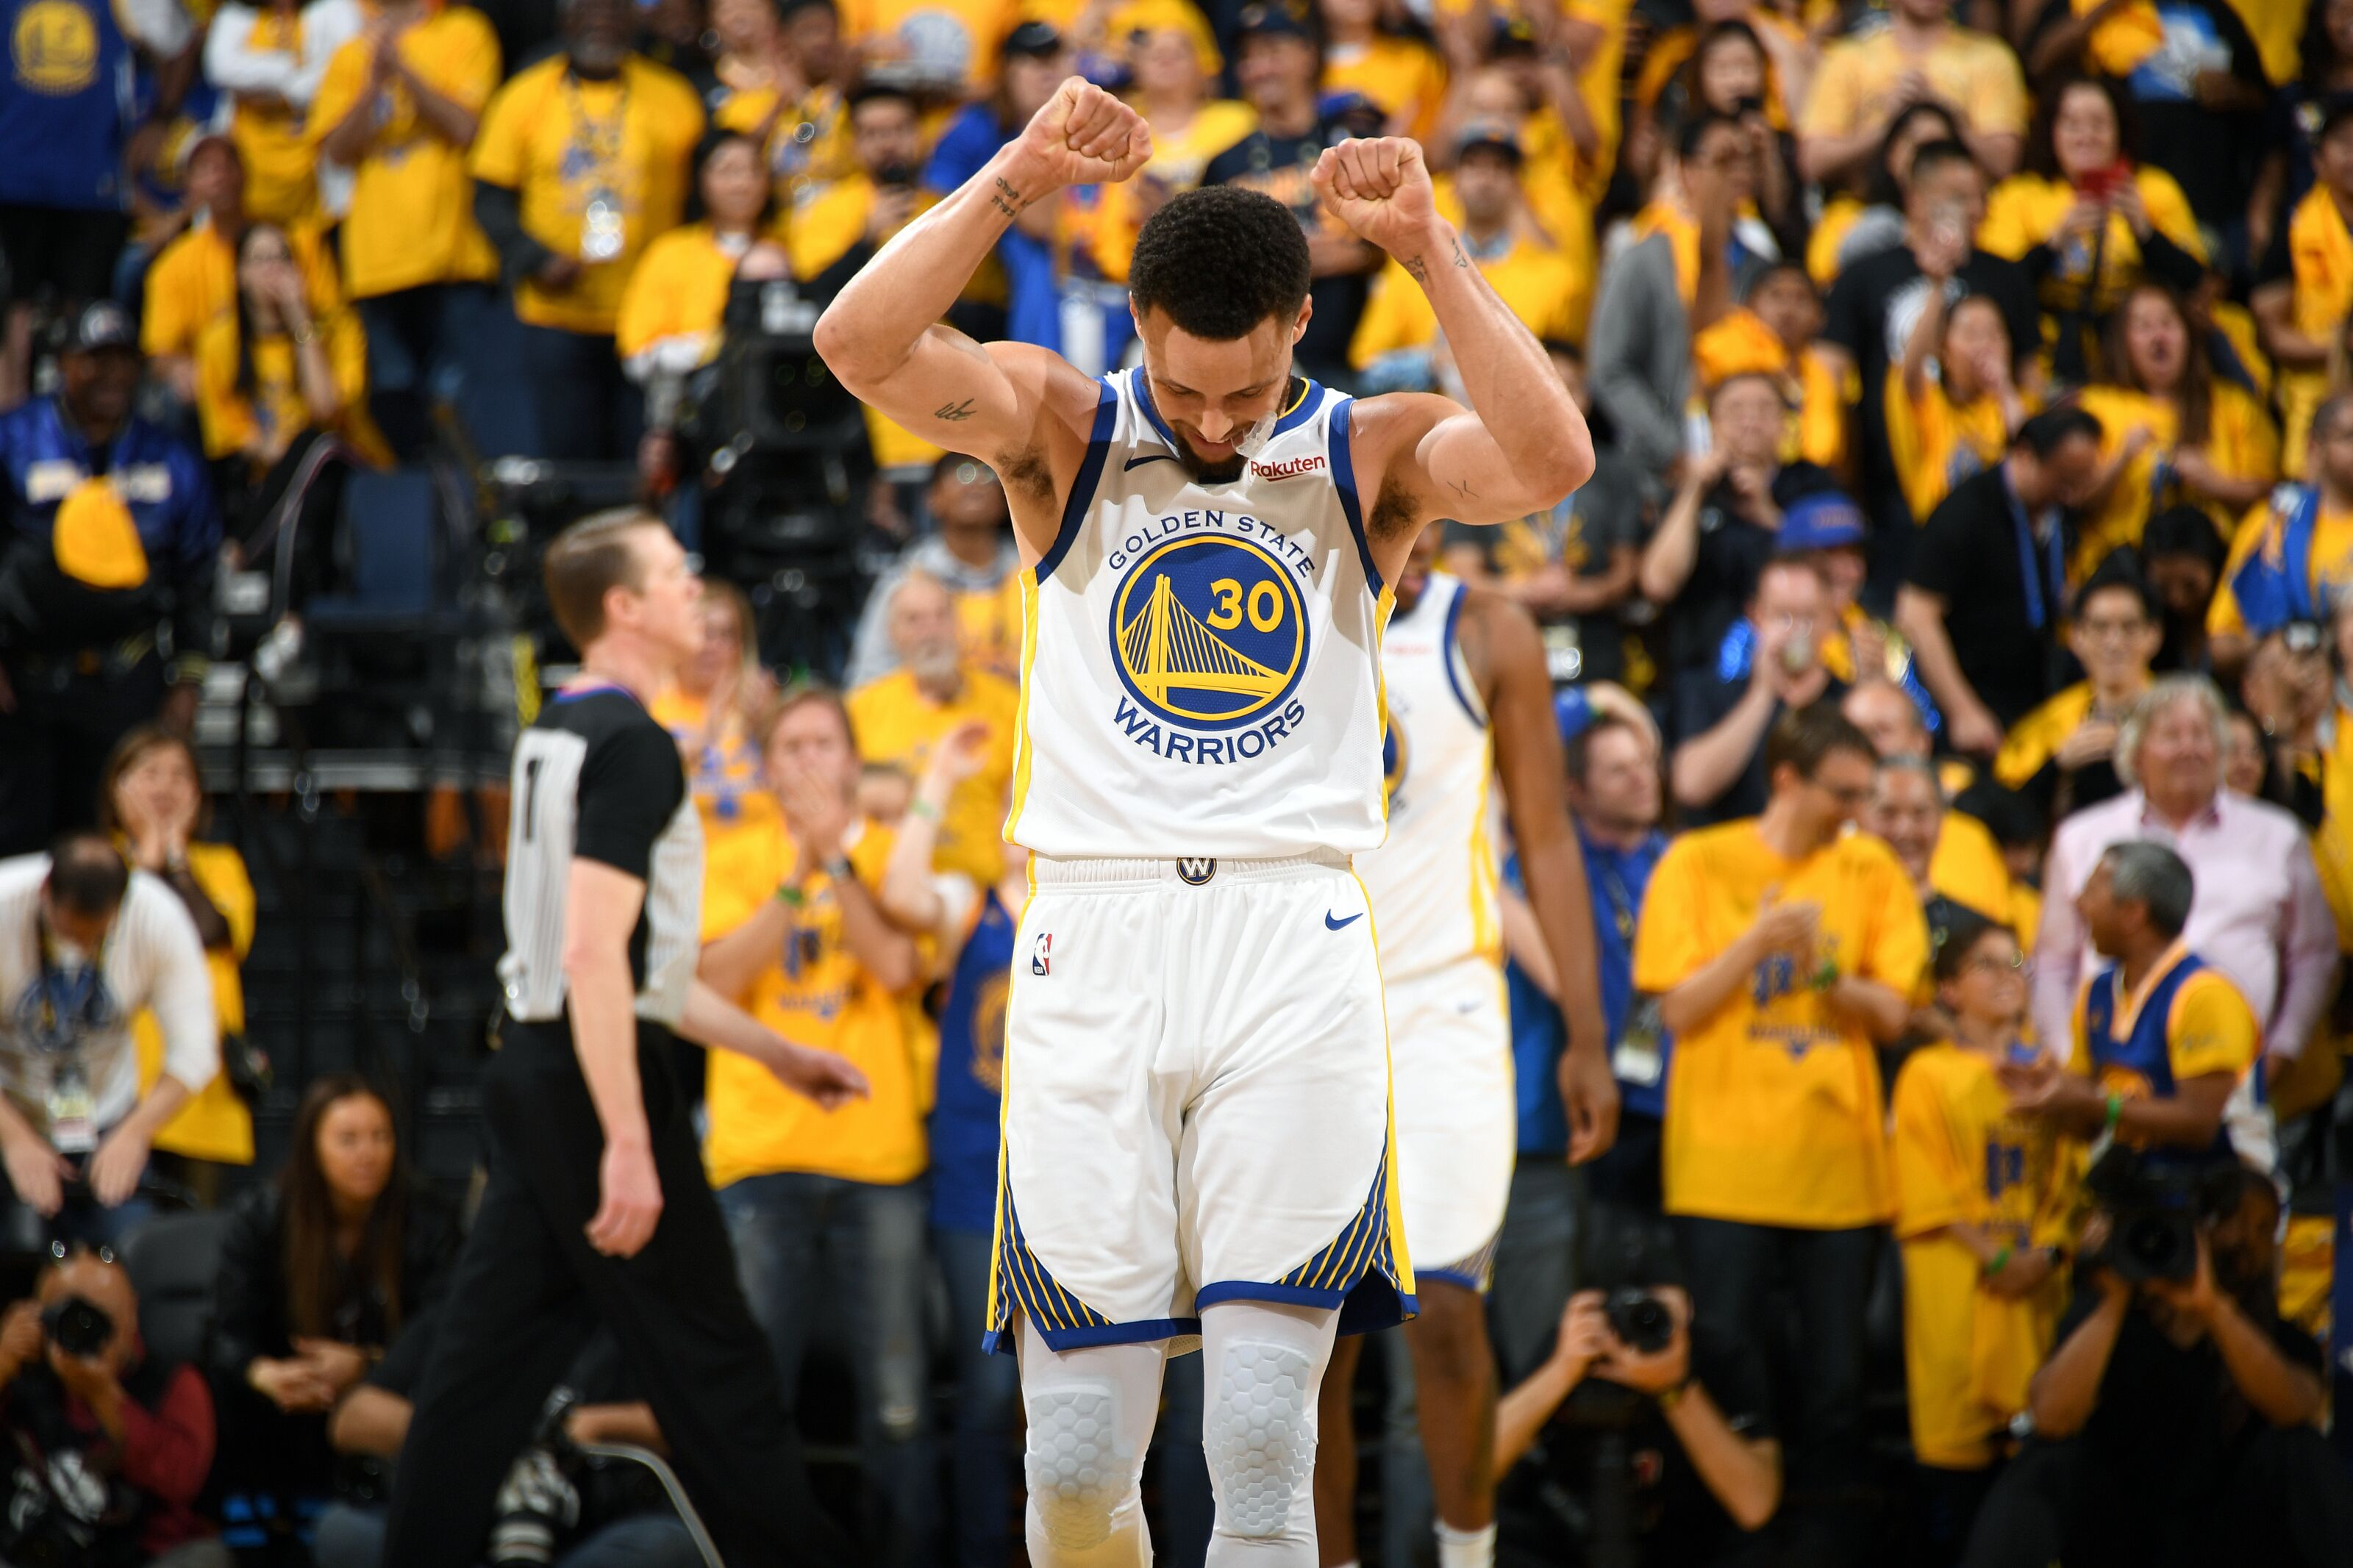 OAKLAND, CA - APRIL 13: Stephen Curry #30 of the Golden State Warriors reacts to a play during Game One of Round One of the 2019 NBA Playoffs against the LA Clippers on April 13, 2019 at ORACLE Arena in Oakland, California. NOTE TO USER: User expressly acknowledges and agrees that, by downloading and/or using this photograph, user is consenting to the terms and conditions of Getty Images License Agreement. Mandatory Copyright Notice: Copyright 2019 NBAE (Photo by Andrew D. Bernstein/NBAE via Getty Images)